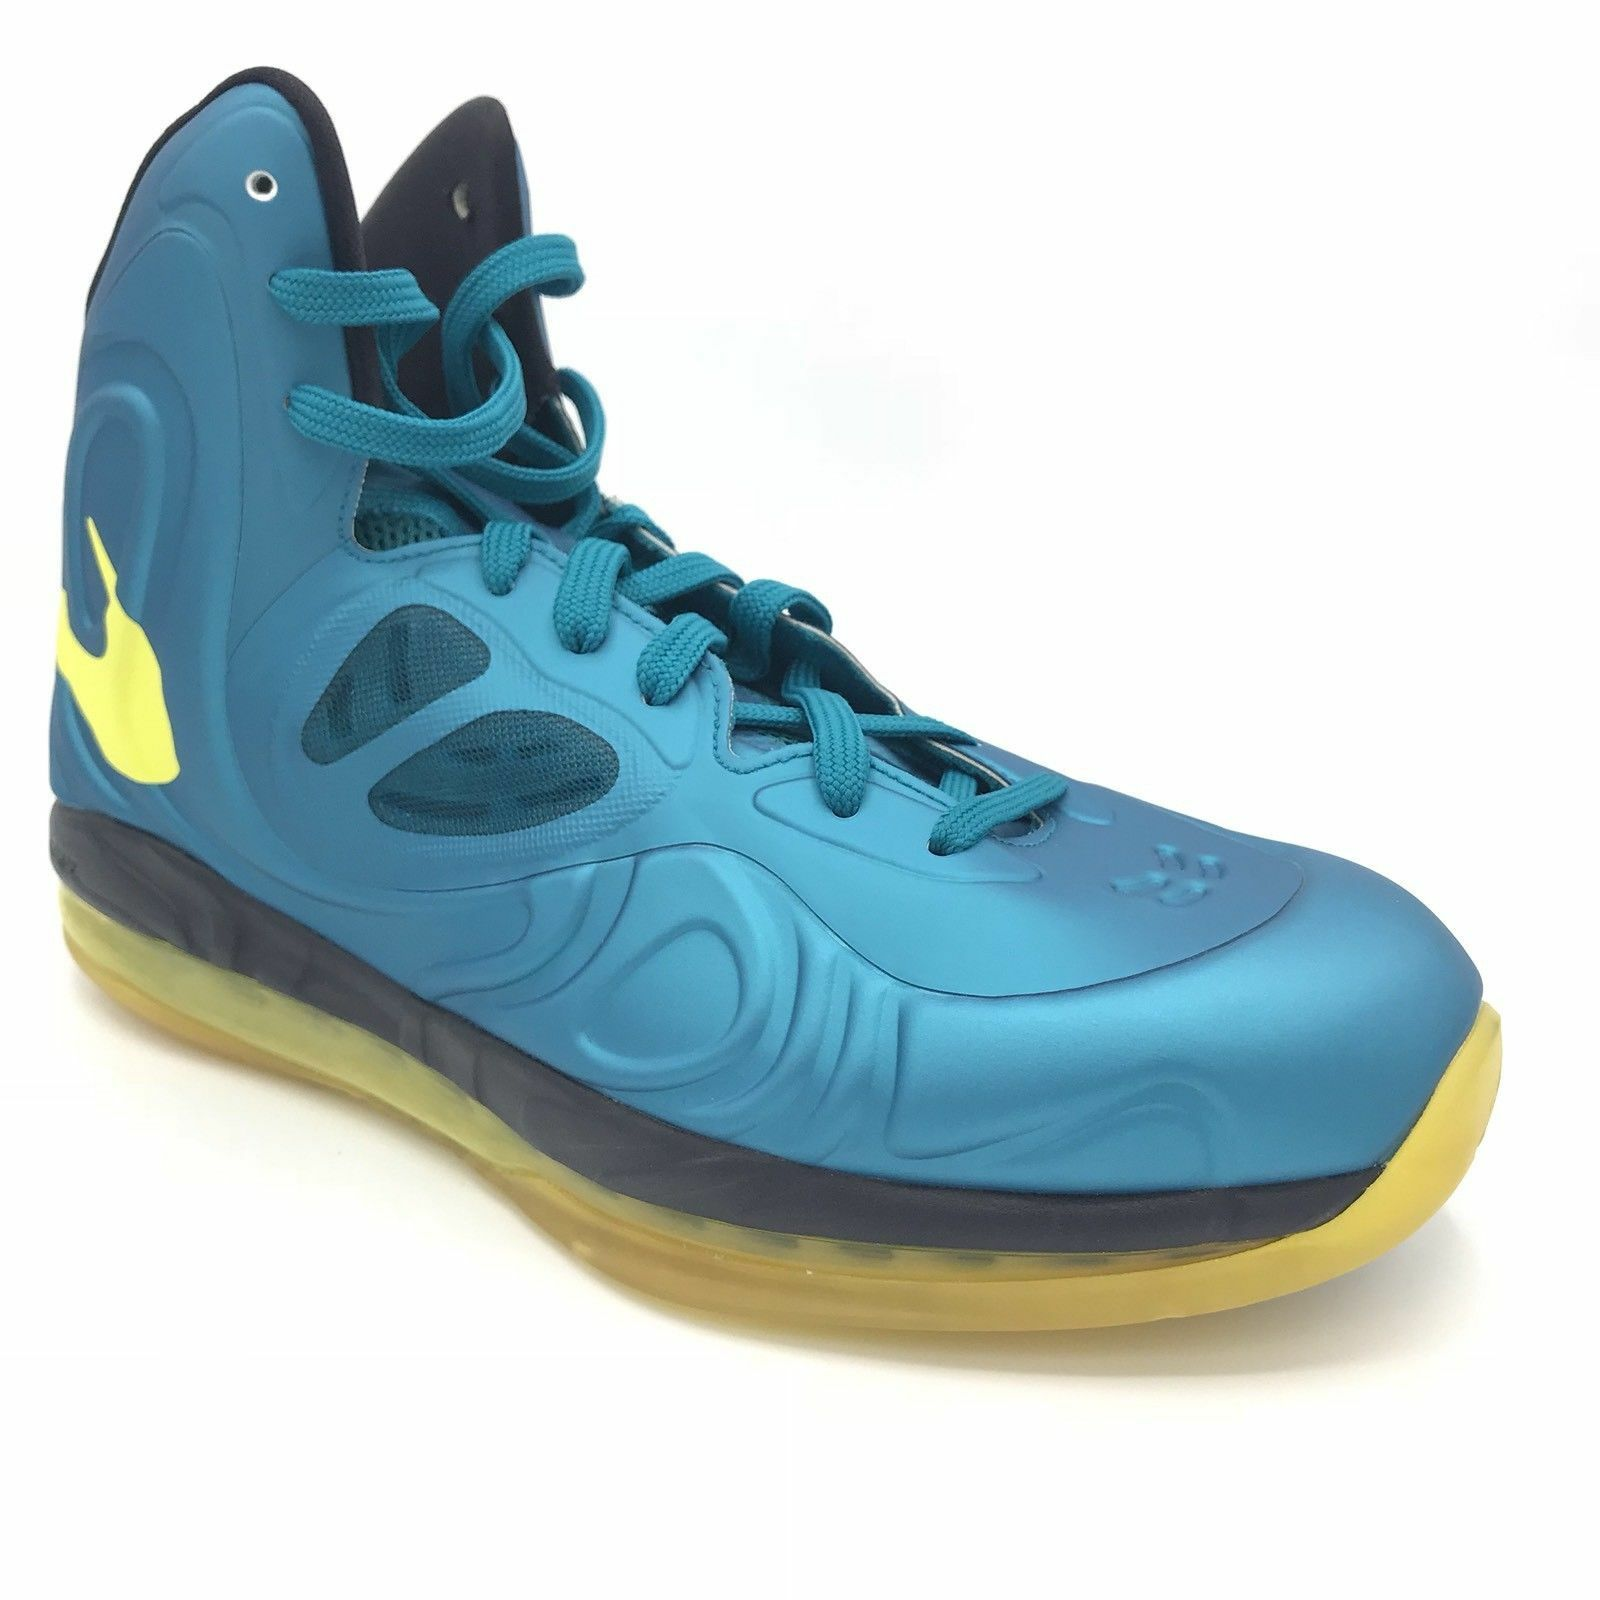 4f4677a90dd Details about Nike Air Max Hyperposite Mens Tropical Teal Sonic Yellow  524862-303 Sz 11